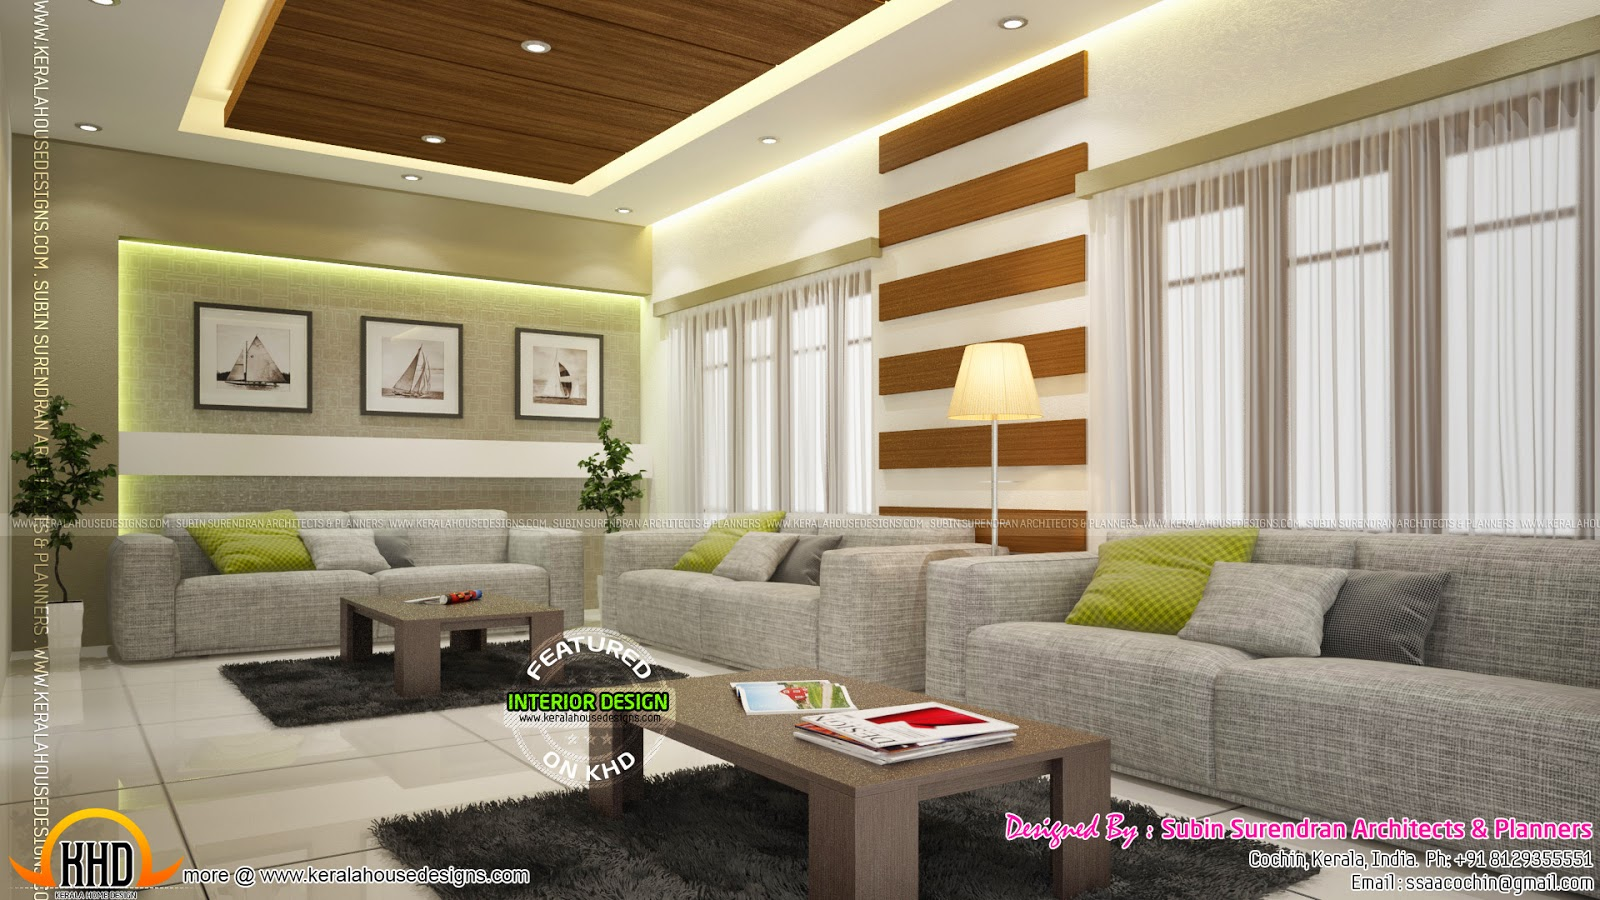 Beautiful home interior designs kerala home design and floor plans - Images of beautiful living rooms ...